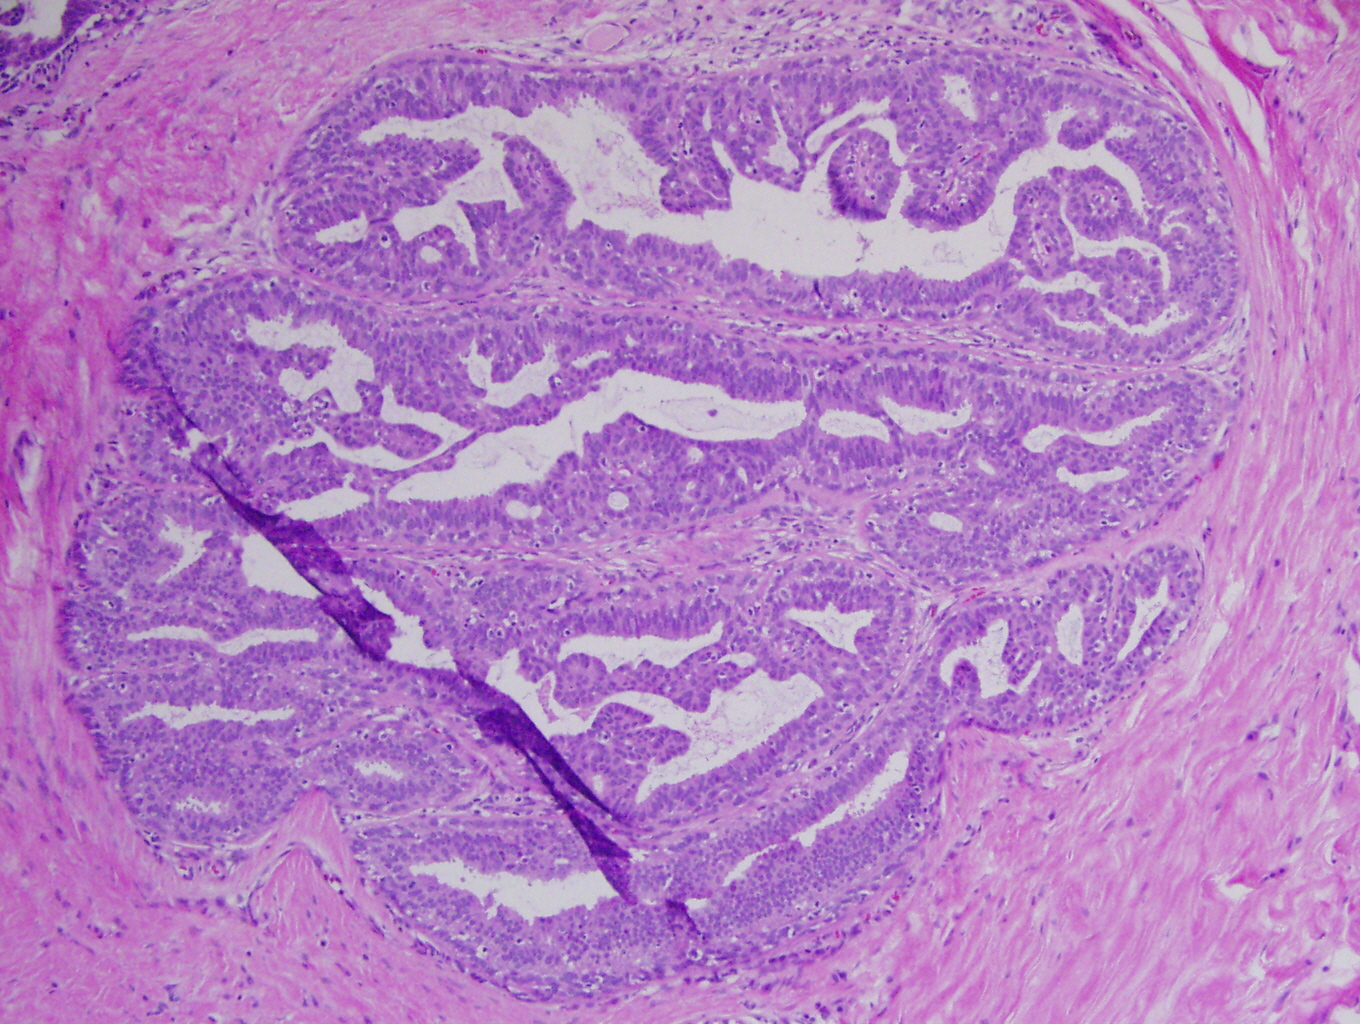 papilloma in histopathology